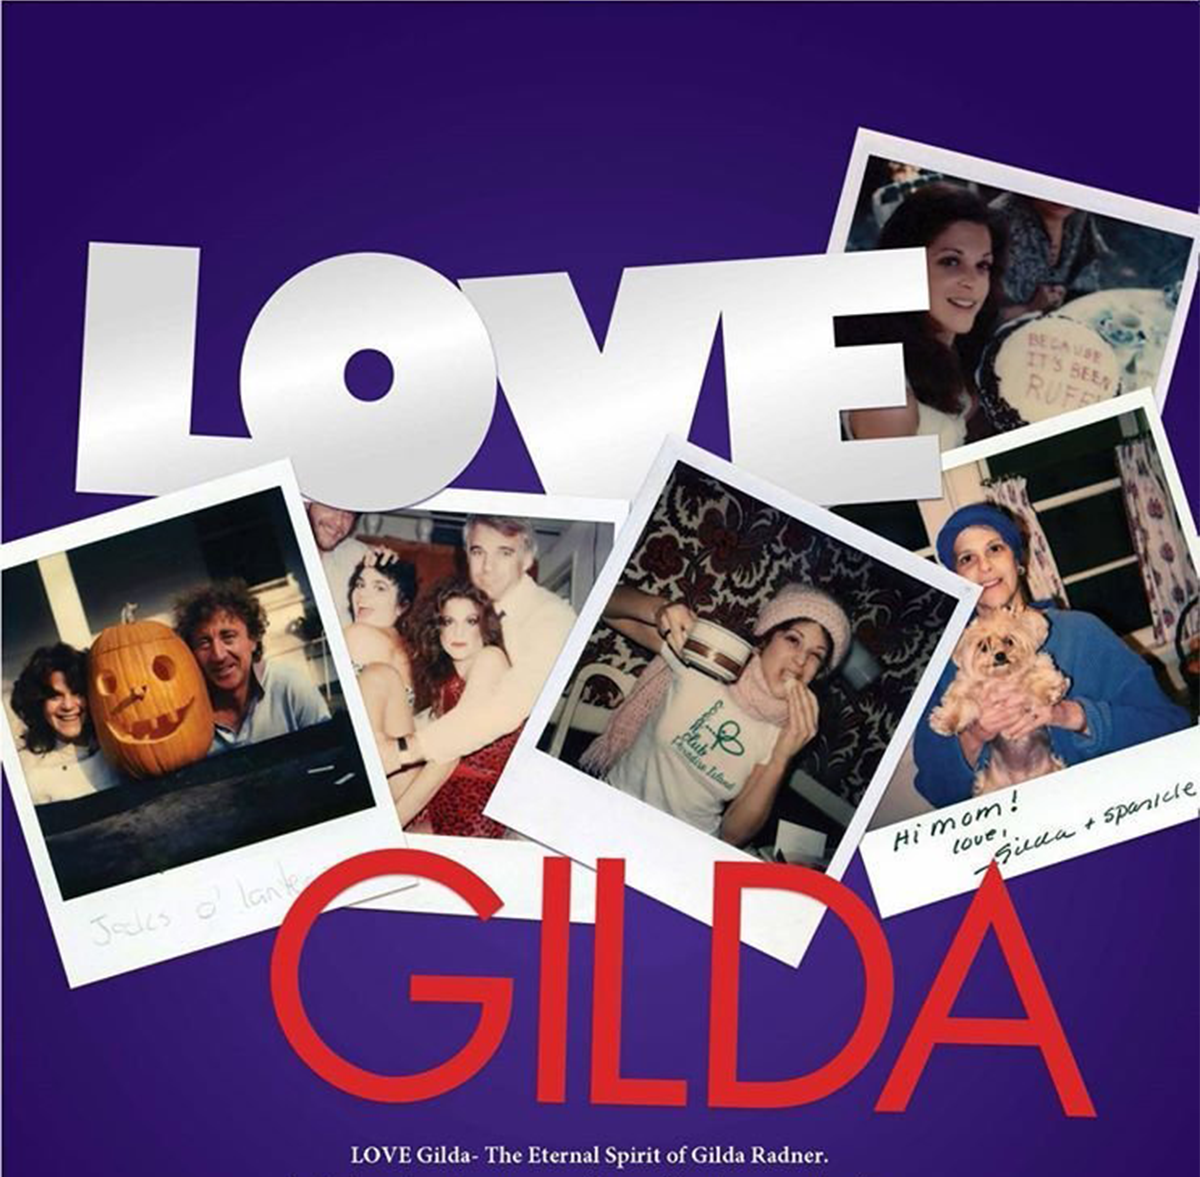 Love, Gilda  will open the Tribeca Film Festival on April 18th. The documentary was produced by alum Alan Zweibel (SS'10: Happy ; SS'17: Playing God ). To purchase tickets to the screening, click  here .